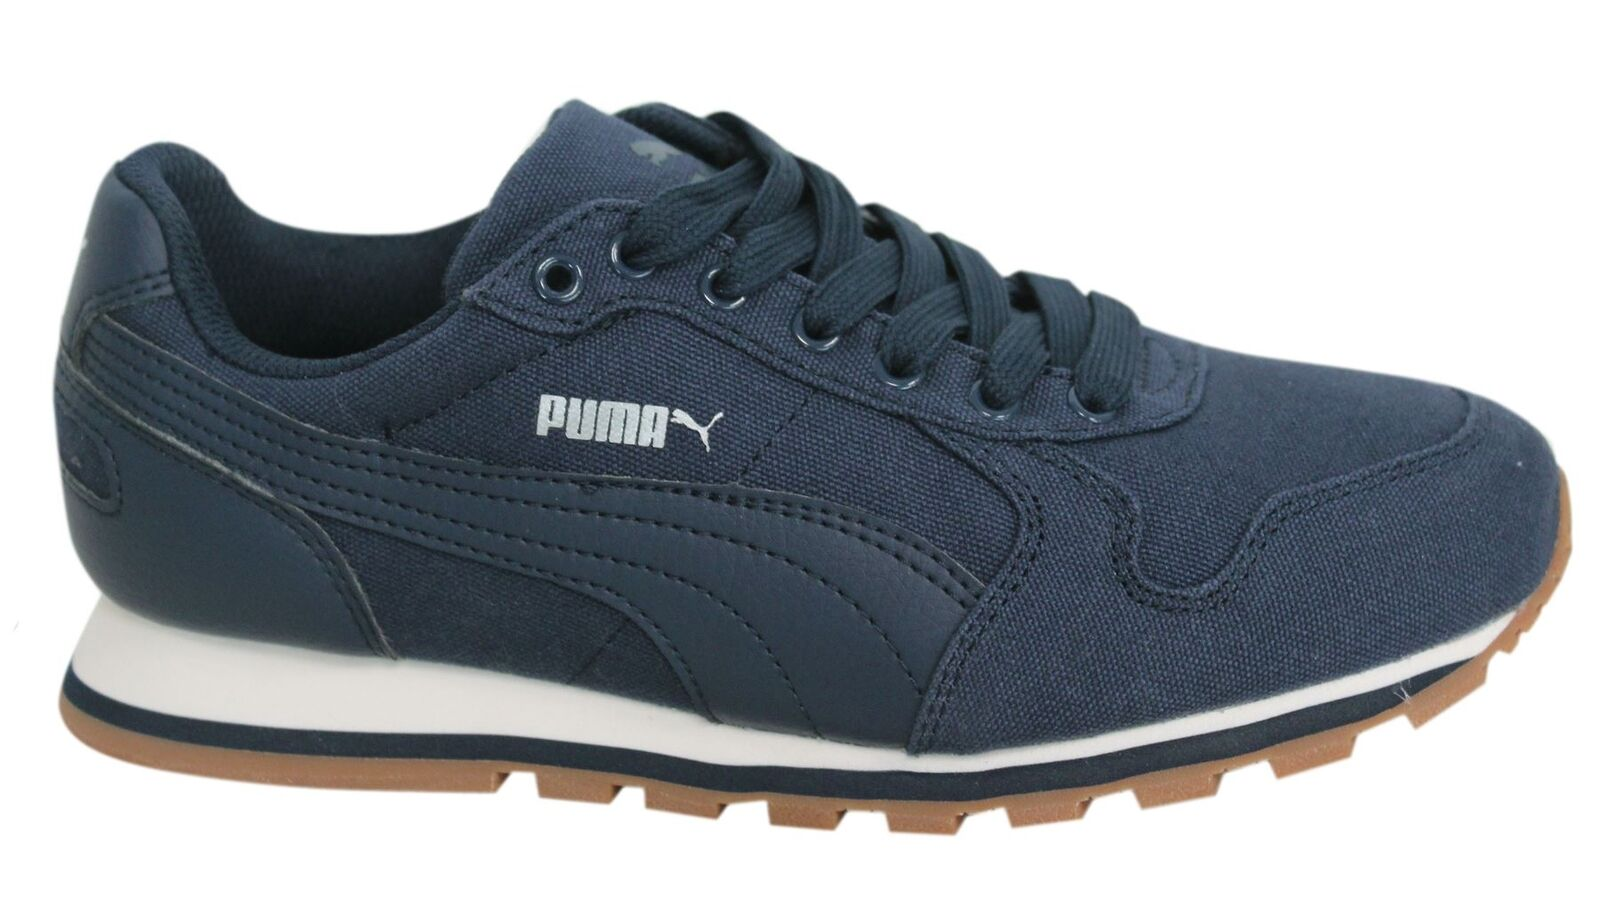 Puma ST Runner CV Lace Up Peacoat Textile Mens Trainers 359880 06 M13